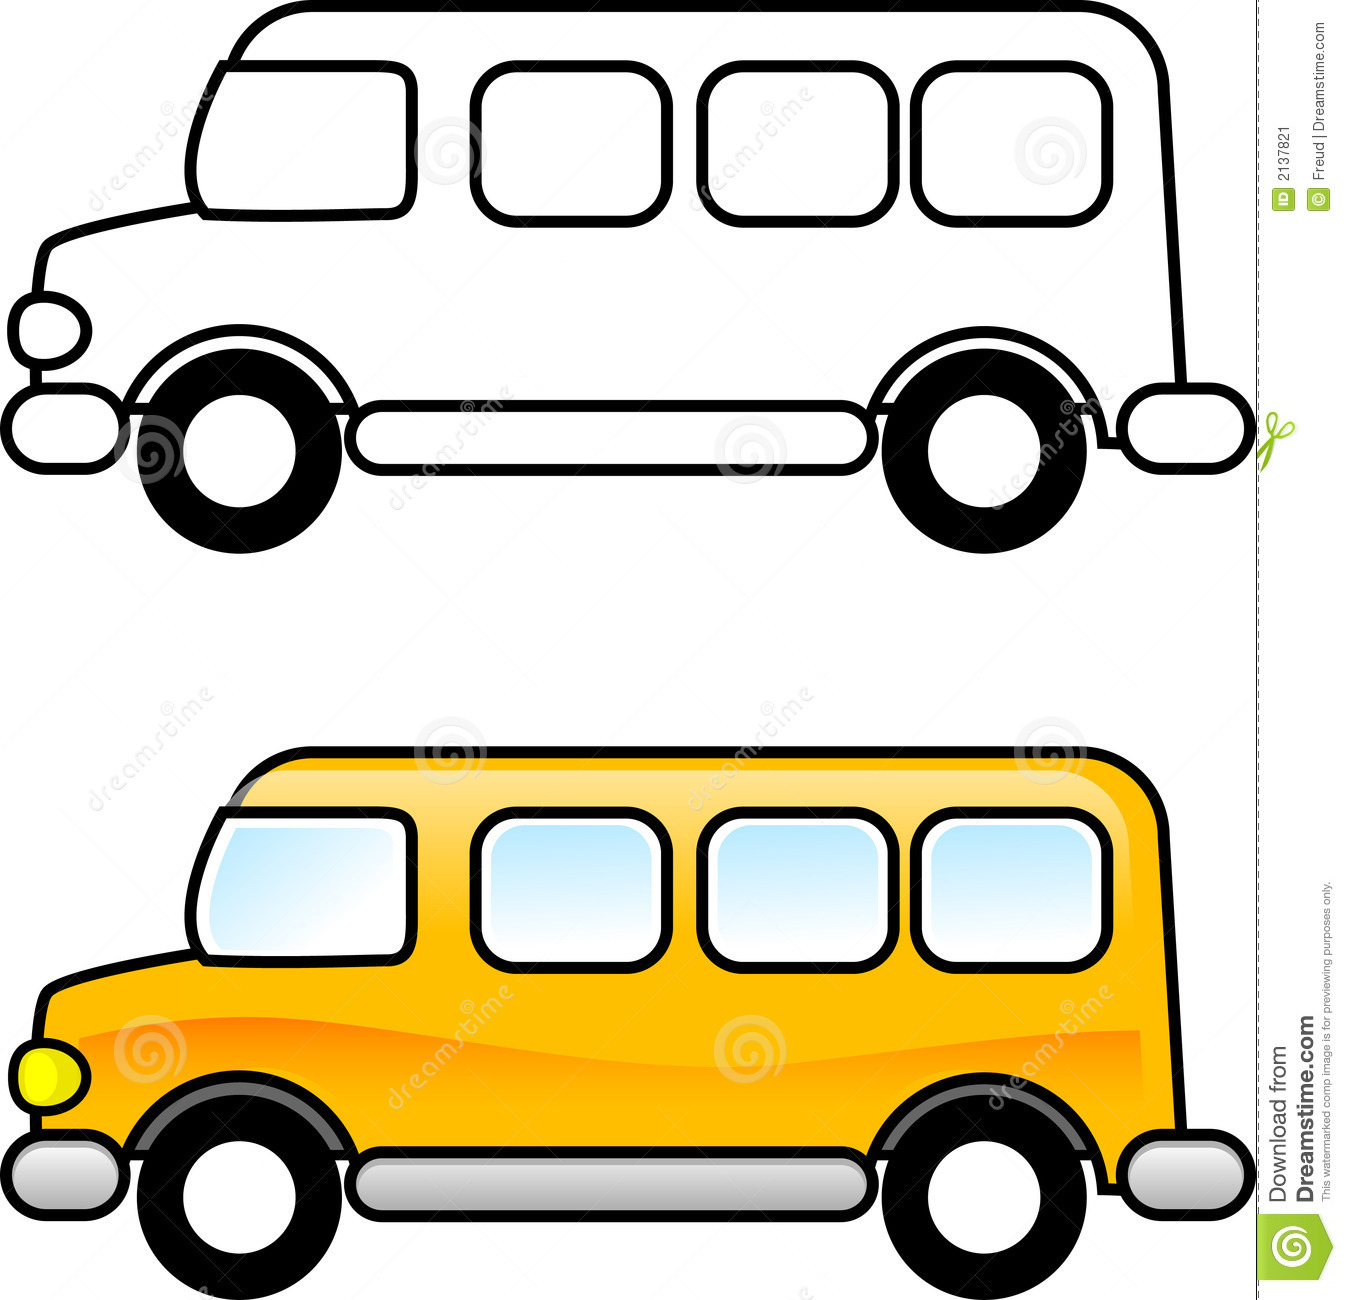 school bus clipart panda free clipart images rh clipartpanda com clipart school bus black and white school bus clip art download free